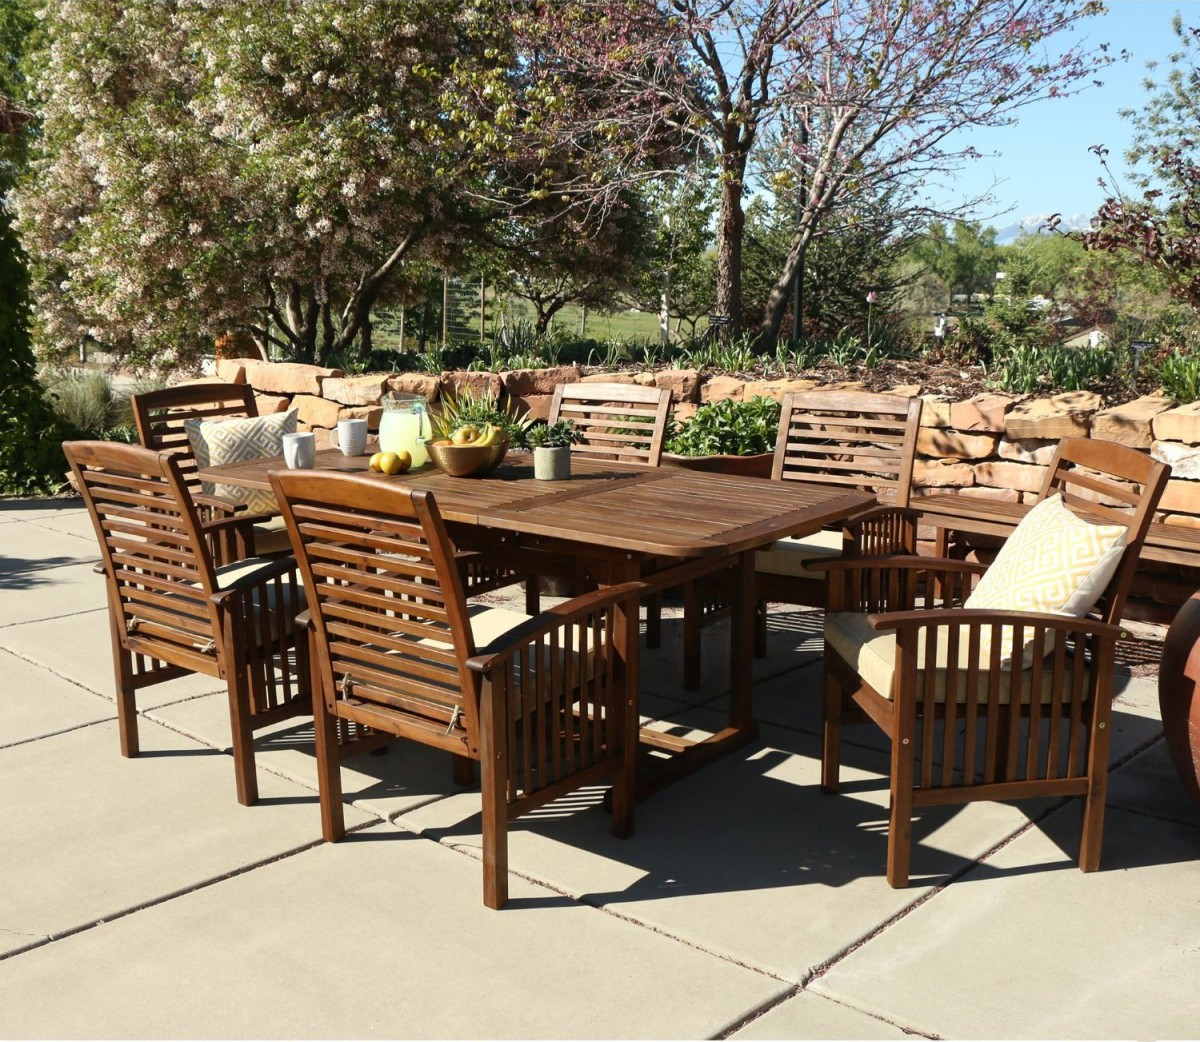 Walker Edison 7 Piece Acacia Wood Patio Dining Set with Cushions. Walker Edison 7 Piece Acacia Wood Patio Dining Set with Cushions